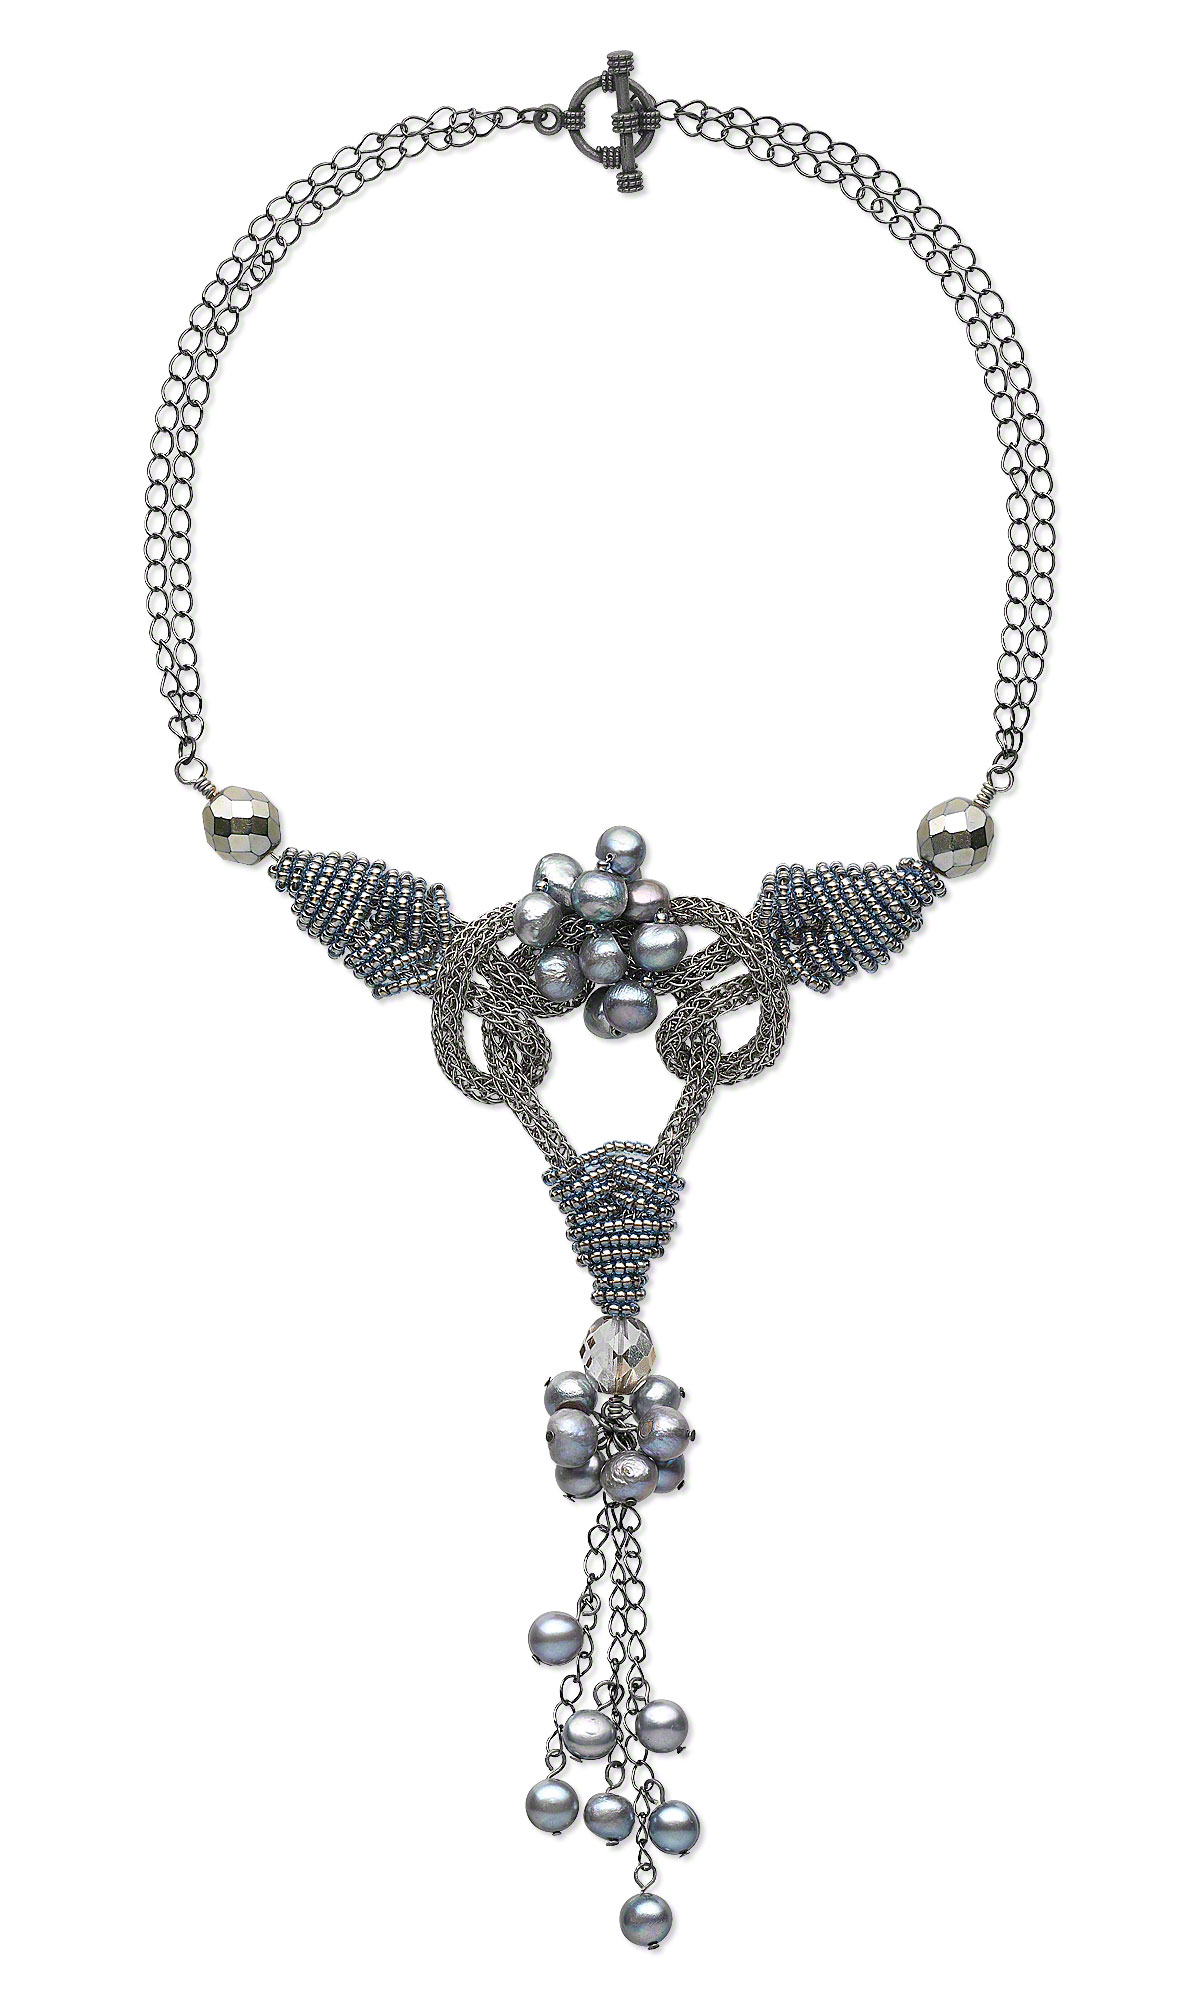 Jewelry Design - Double-Strand Necklace with Viking Knit Wire, Seed ...